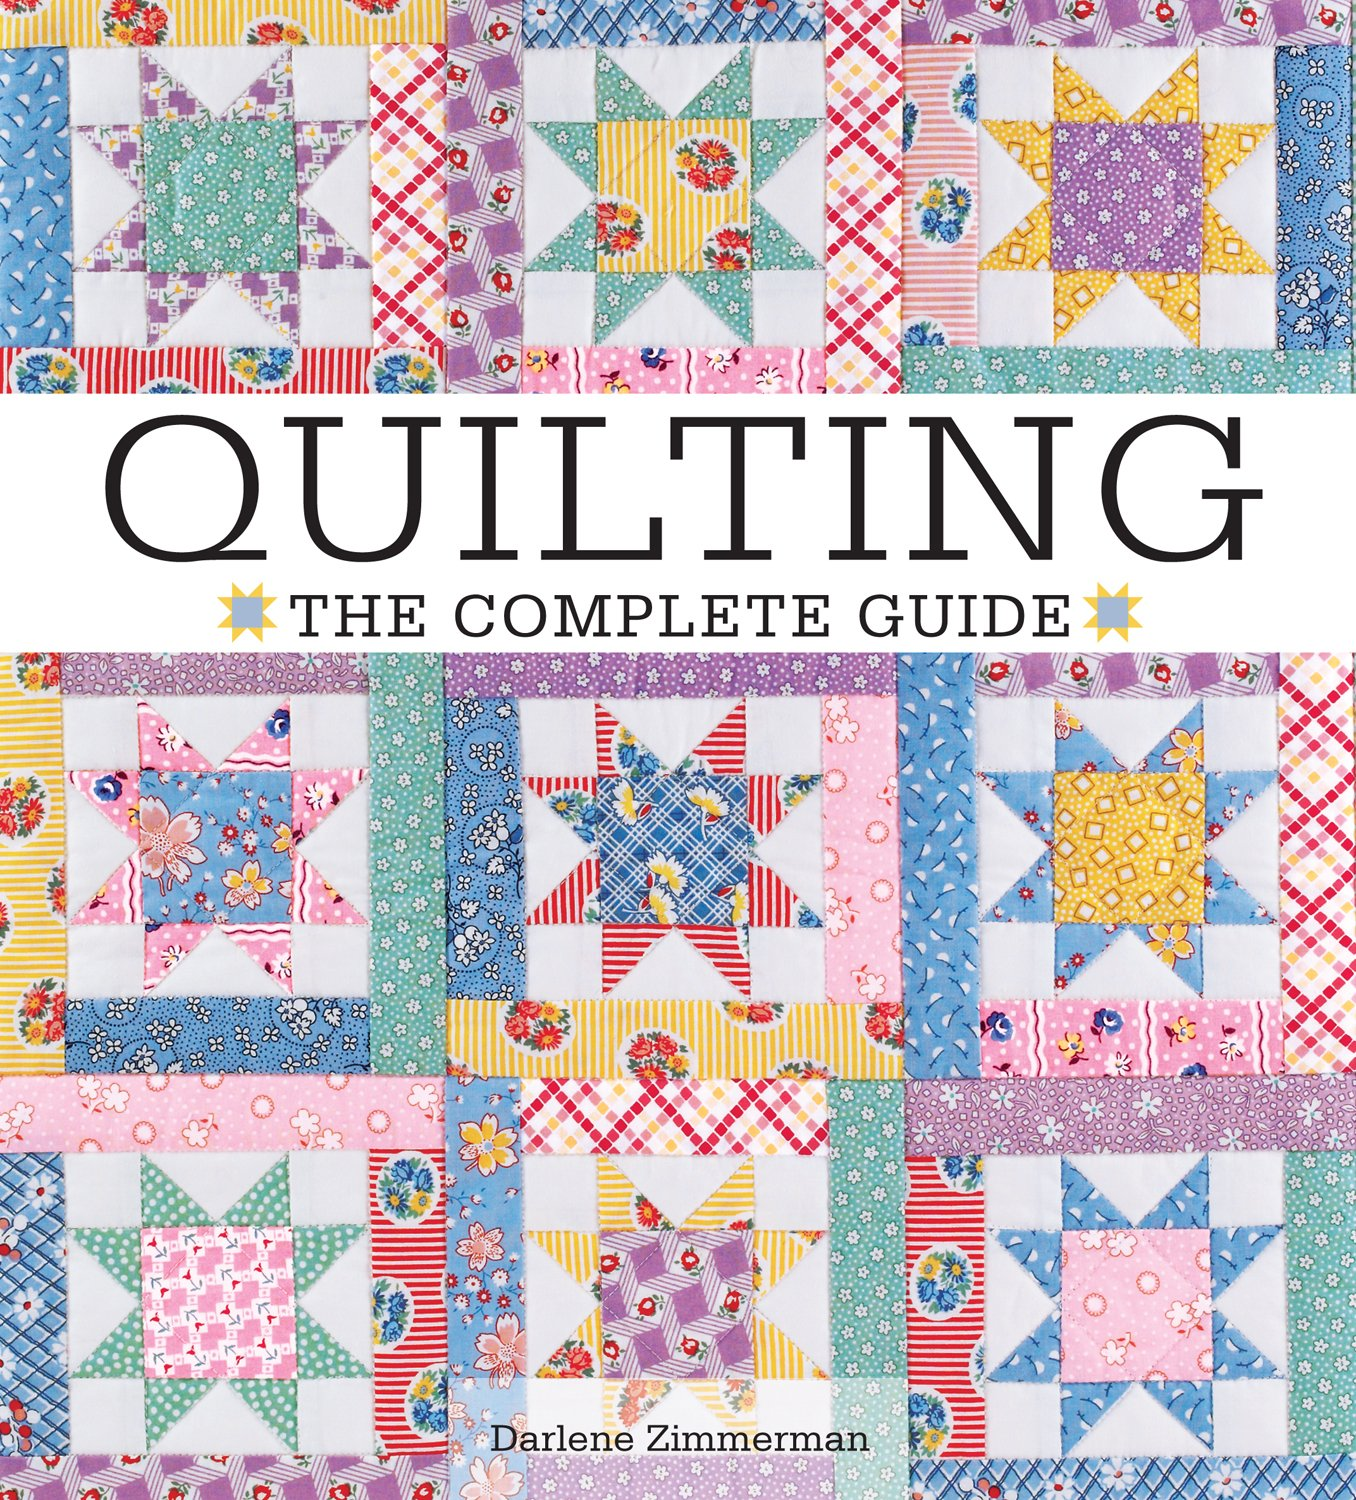 Quilting - The Complete Guide PDF ePub book